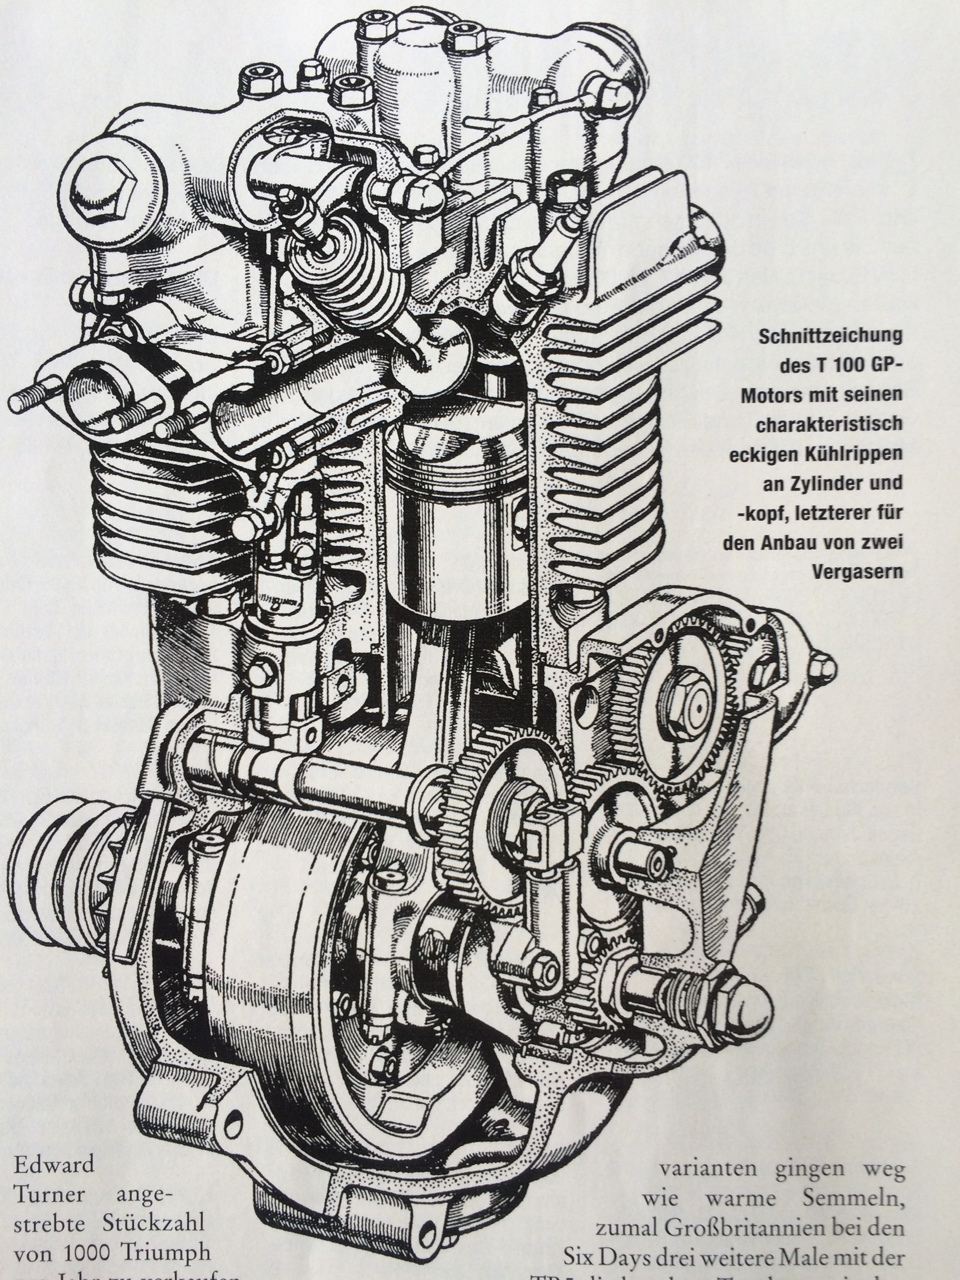 Yesterday When We Were Young S 23 Milwaukee V Twin Harley Wasserboxer Engine Diagram Attachment 243059